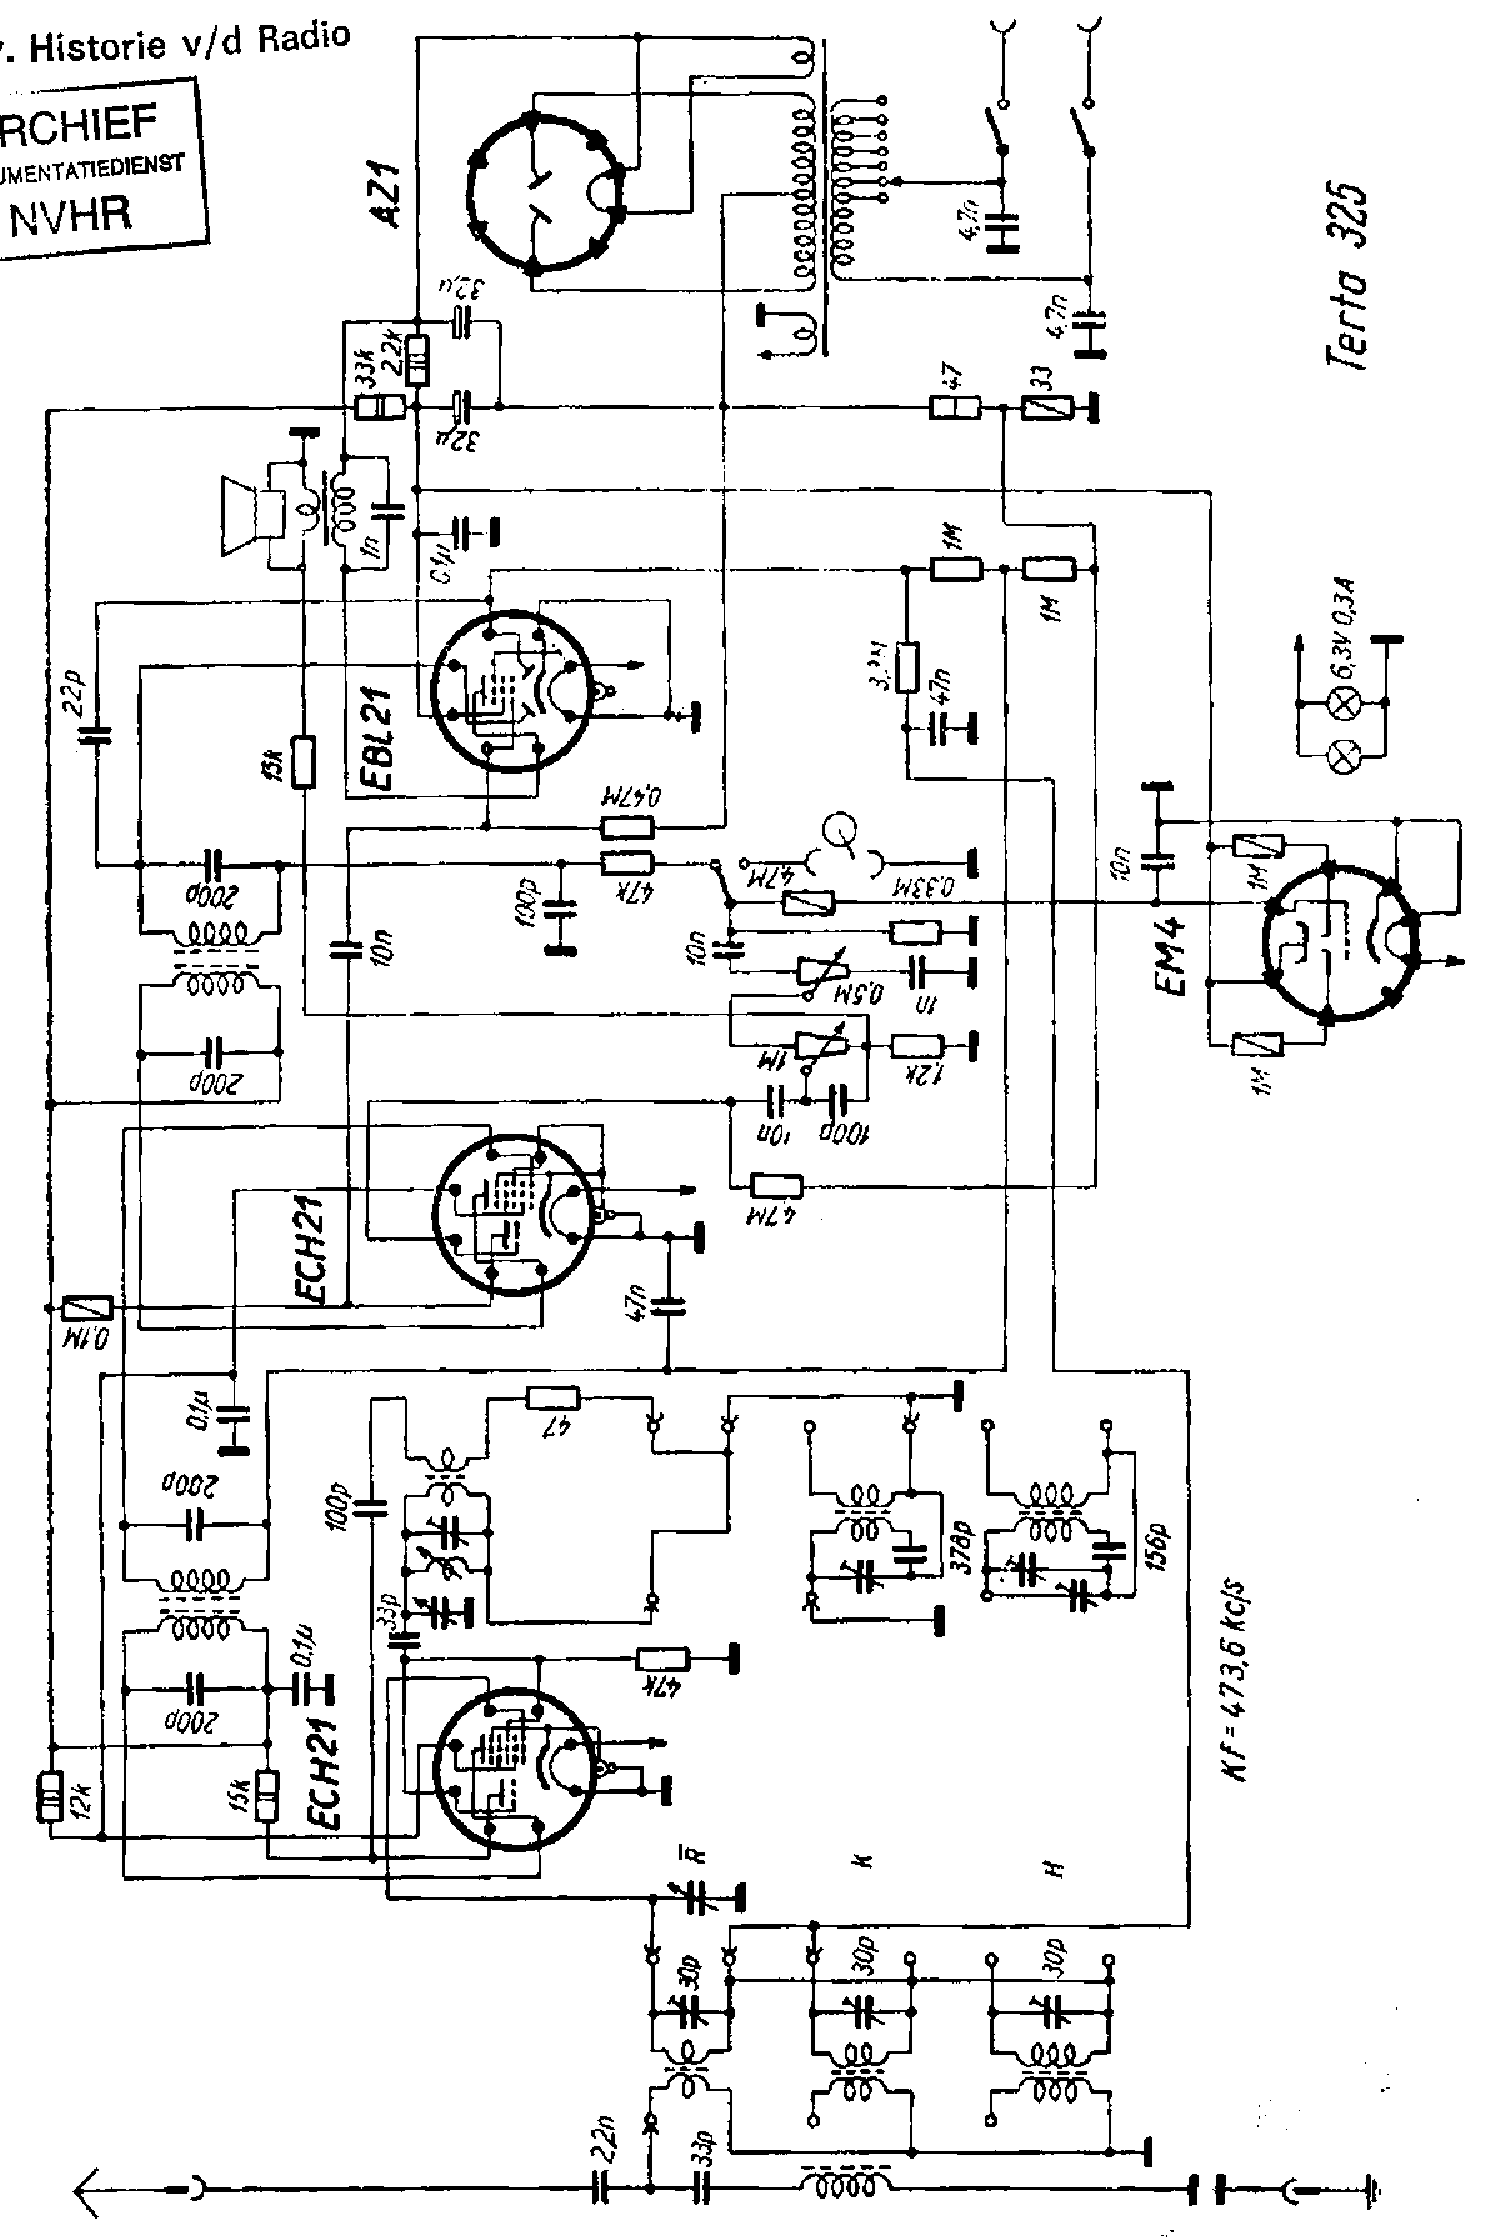 Terta T325 Radio Sch Service Manual Download Schematics